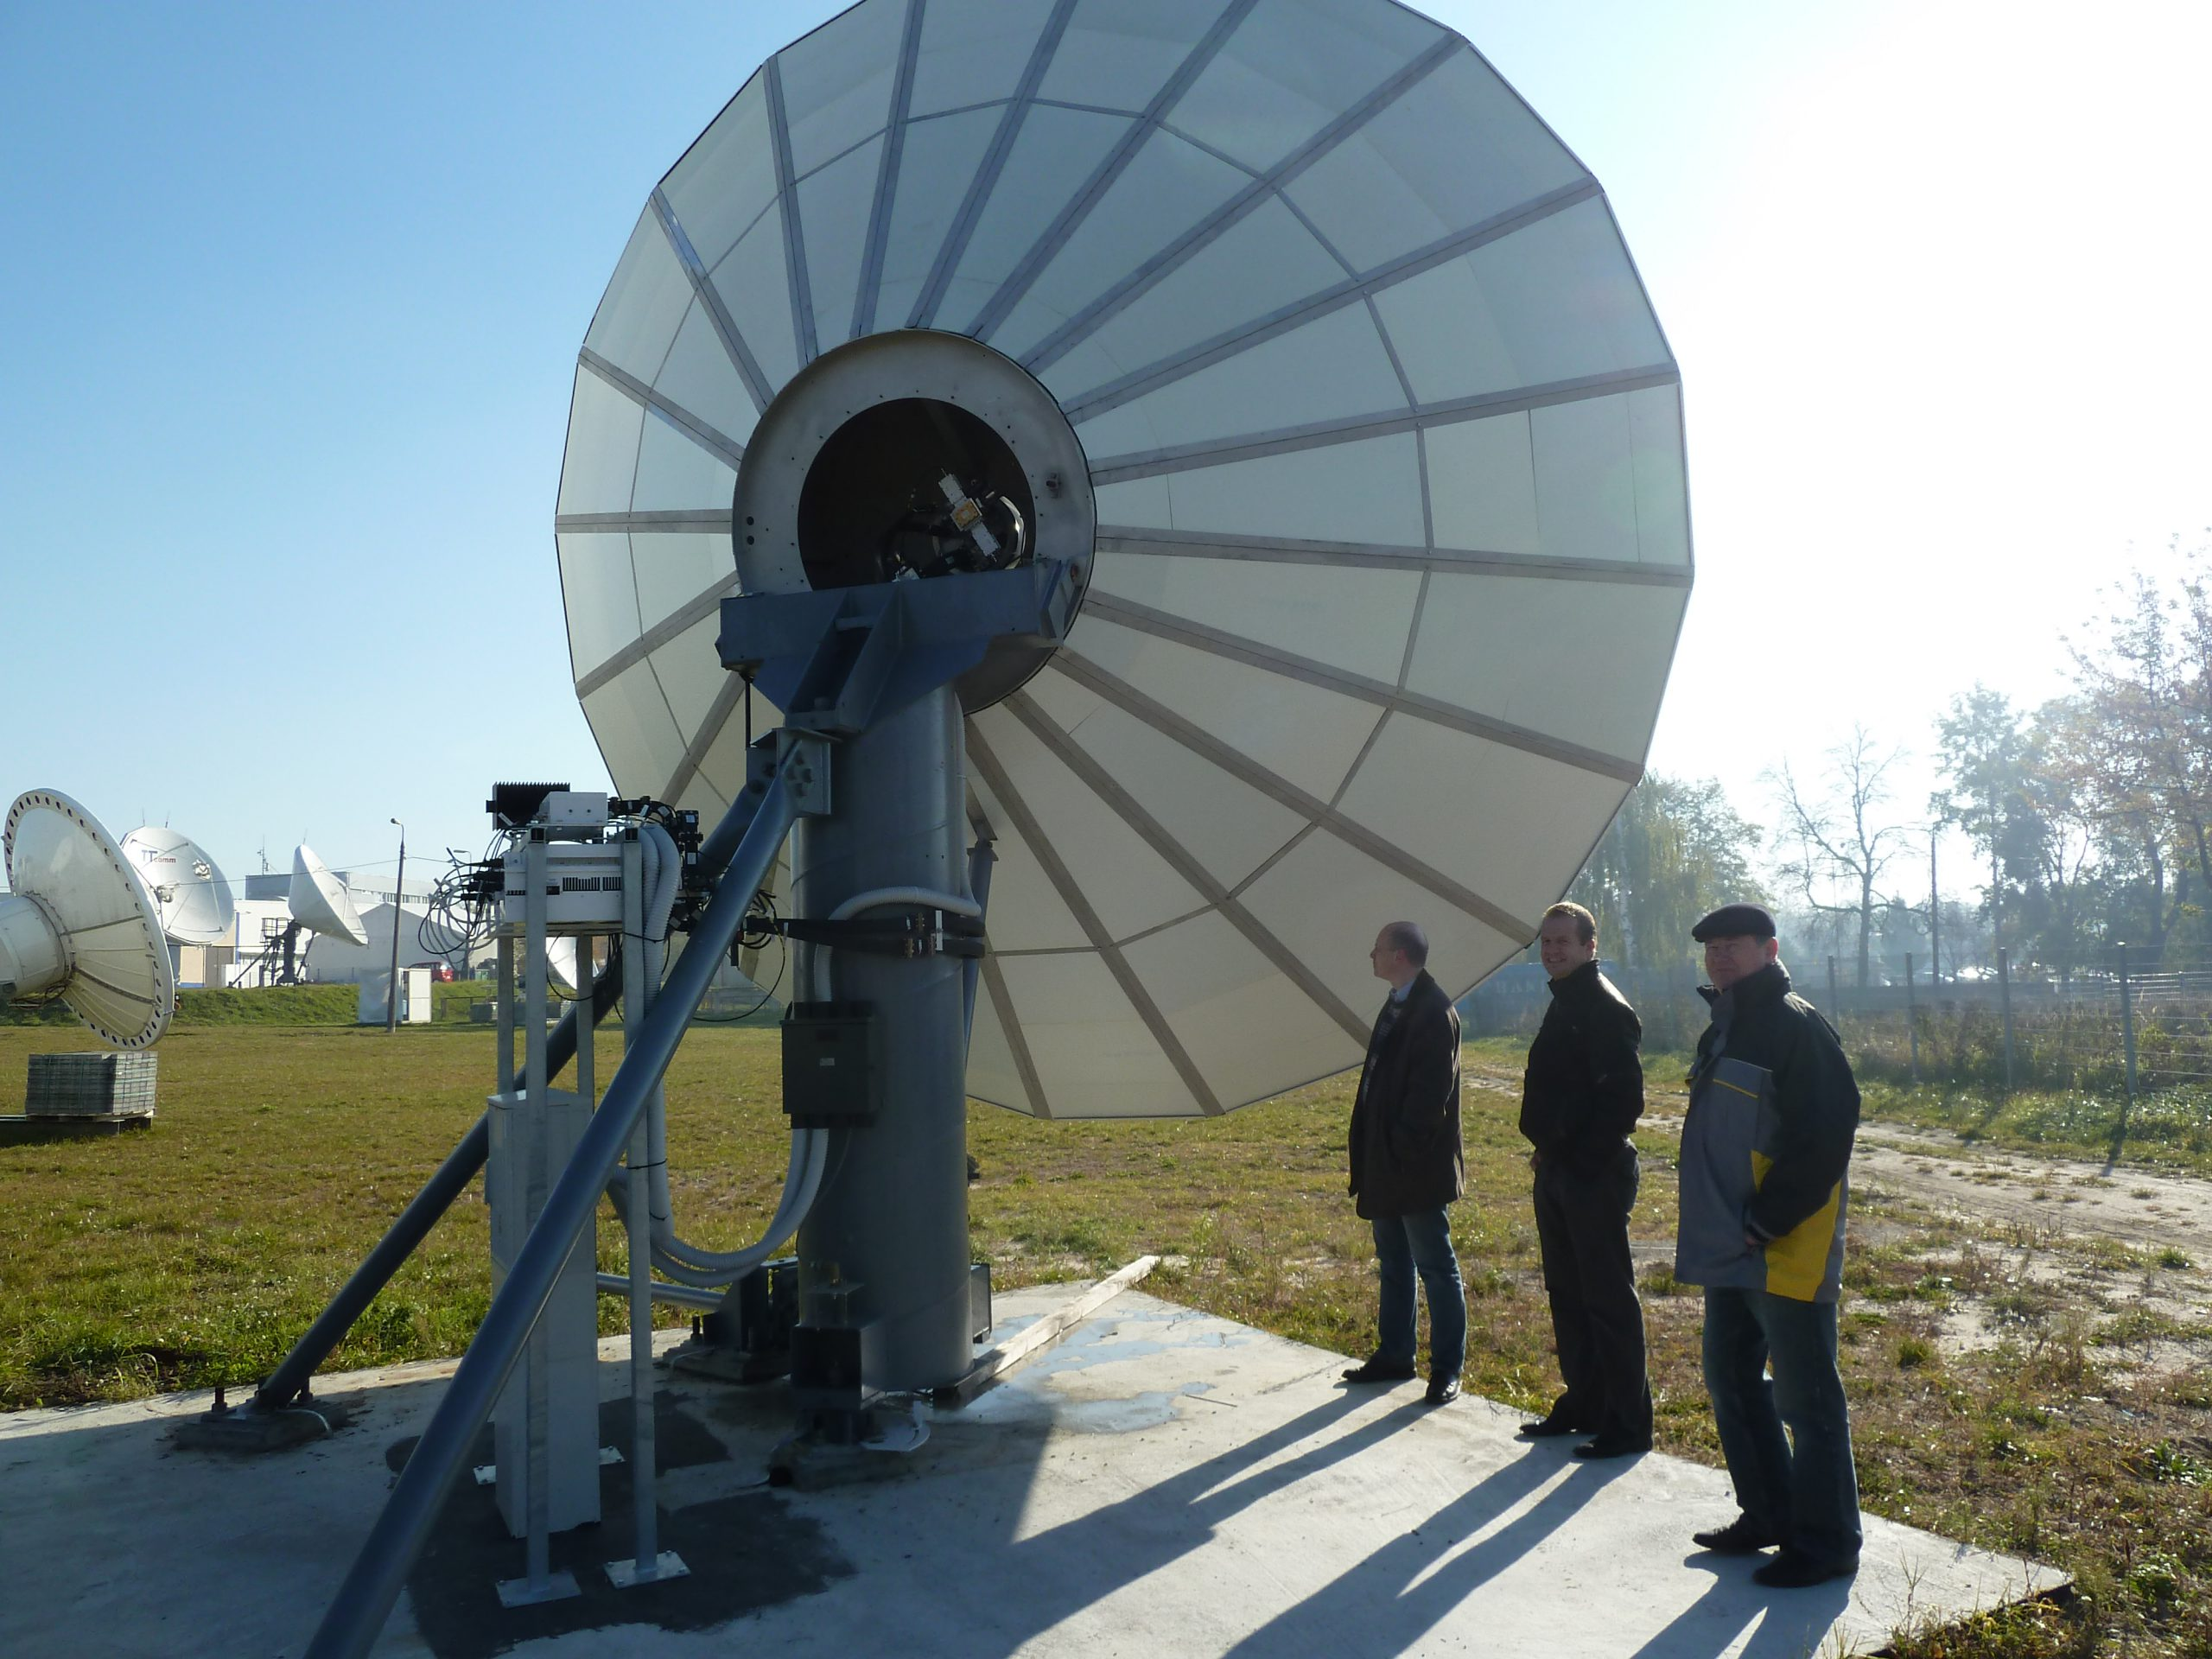 Skybrokers installed a VertexRSI 8.1m antenna in Poland